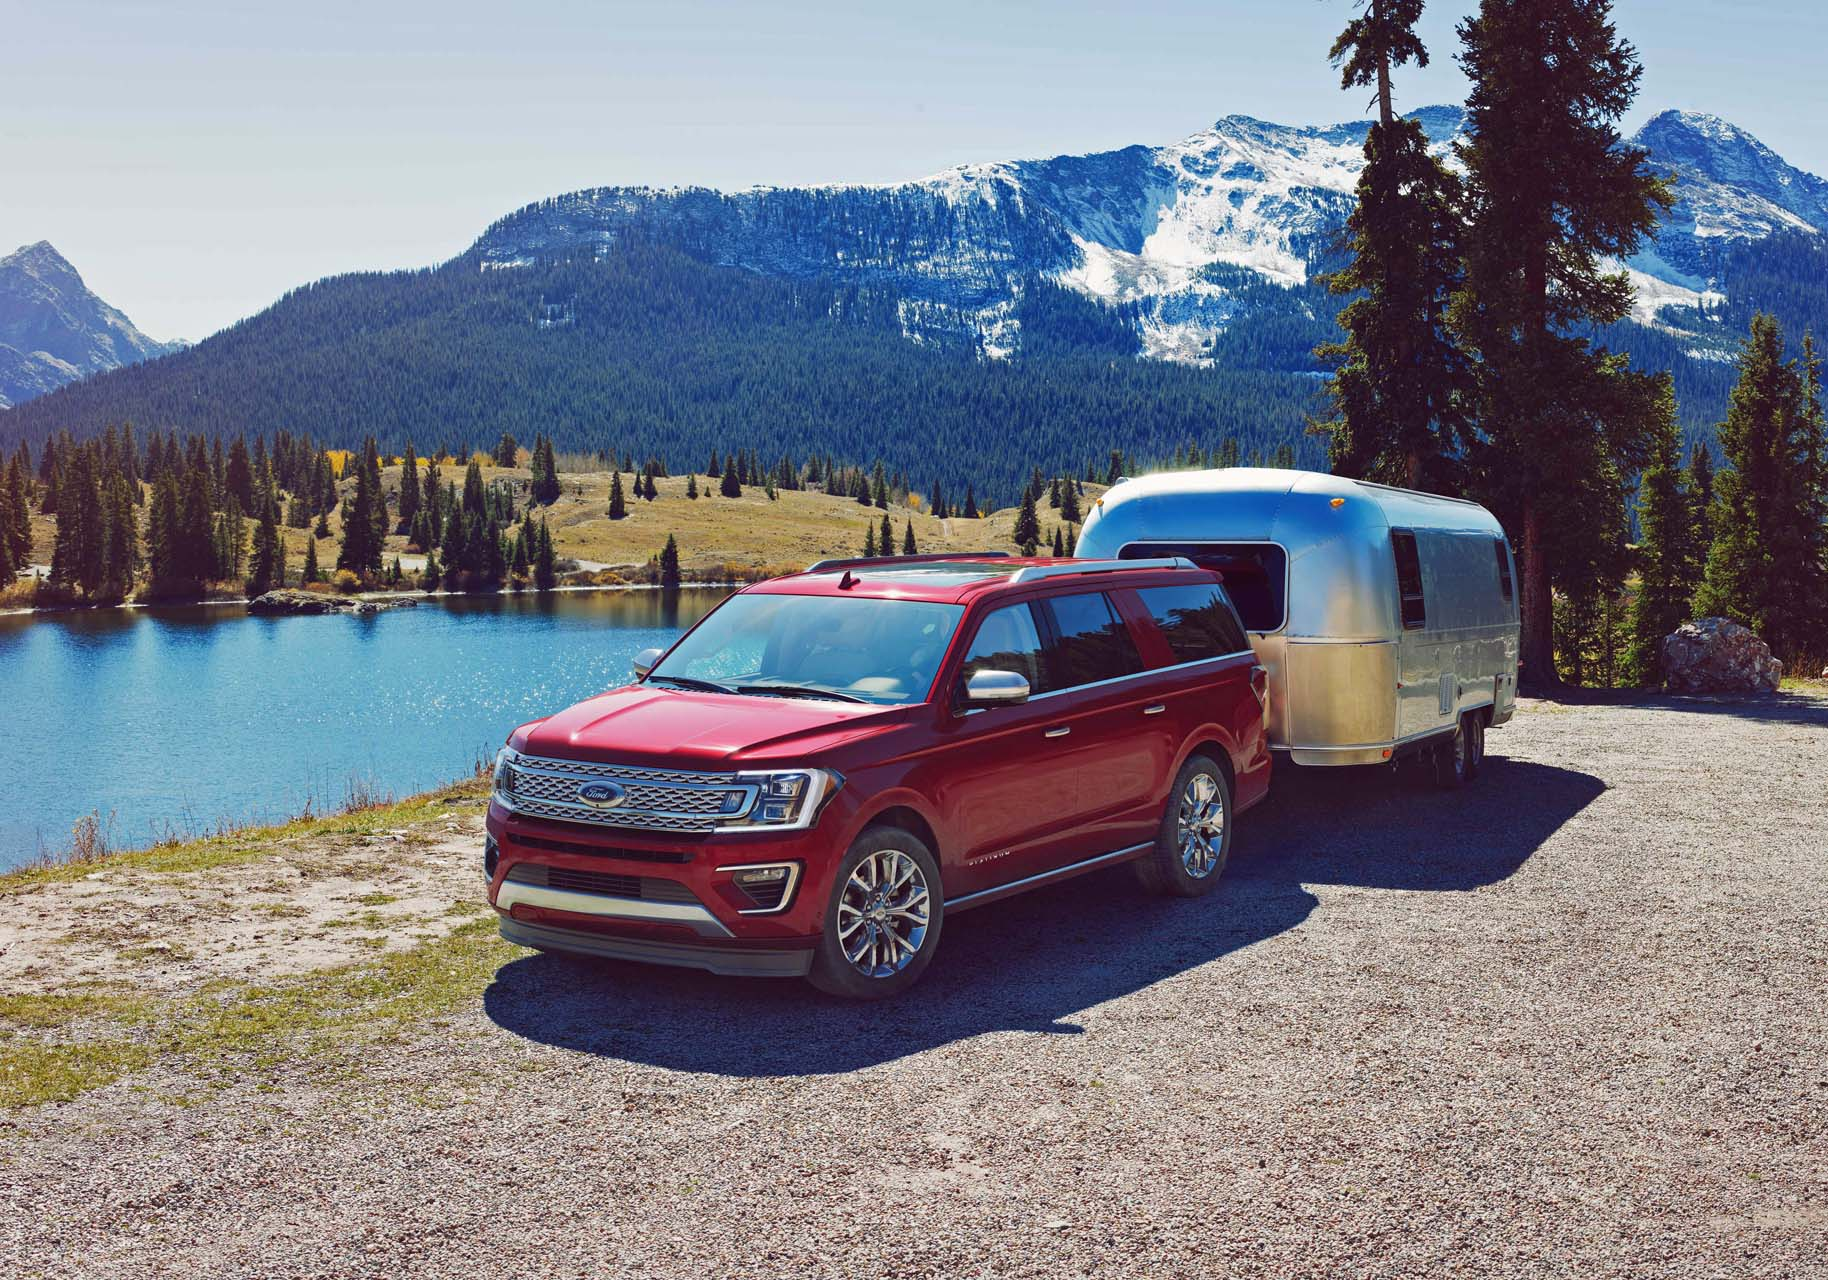 Most Capable Full Size Suv For Towing The 2018 Ford Expedition Again